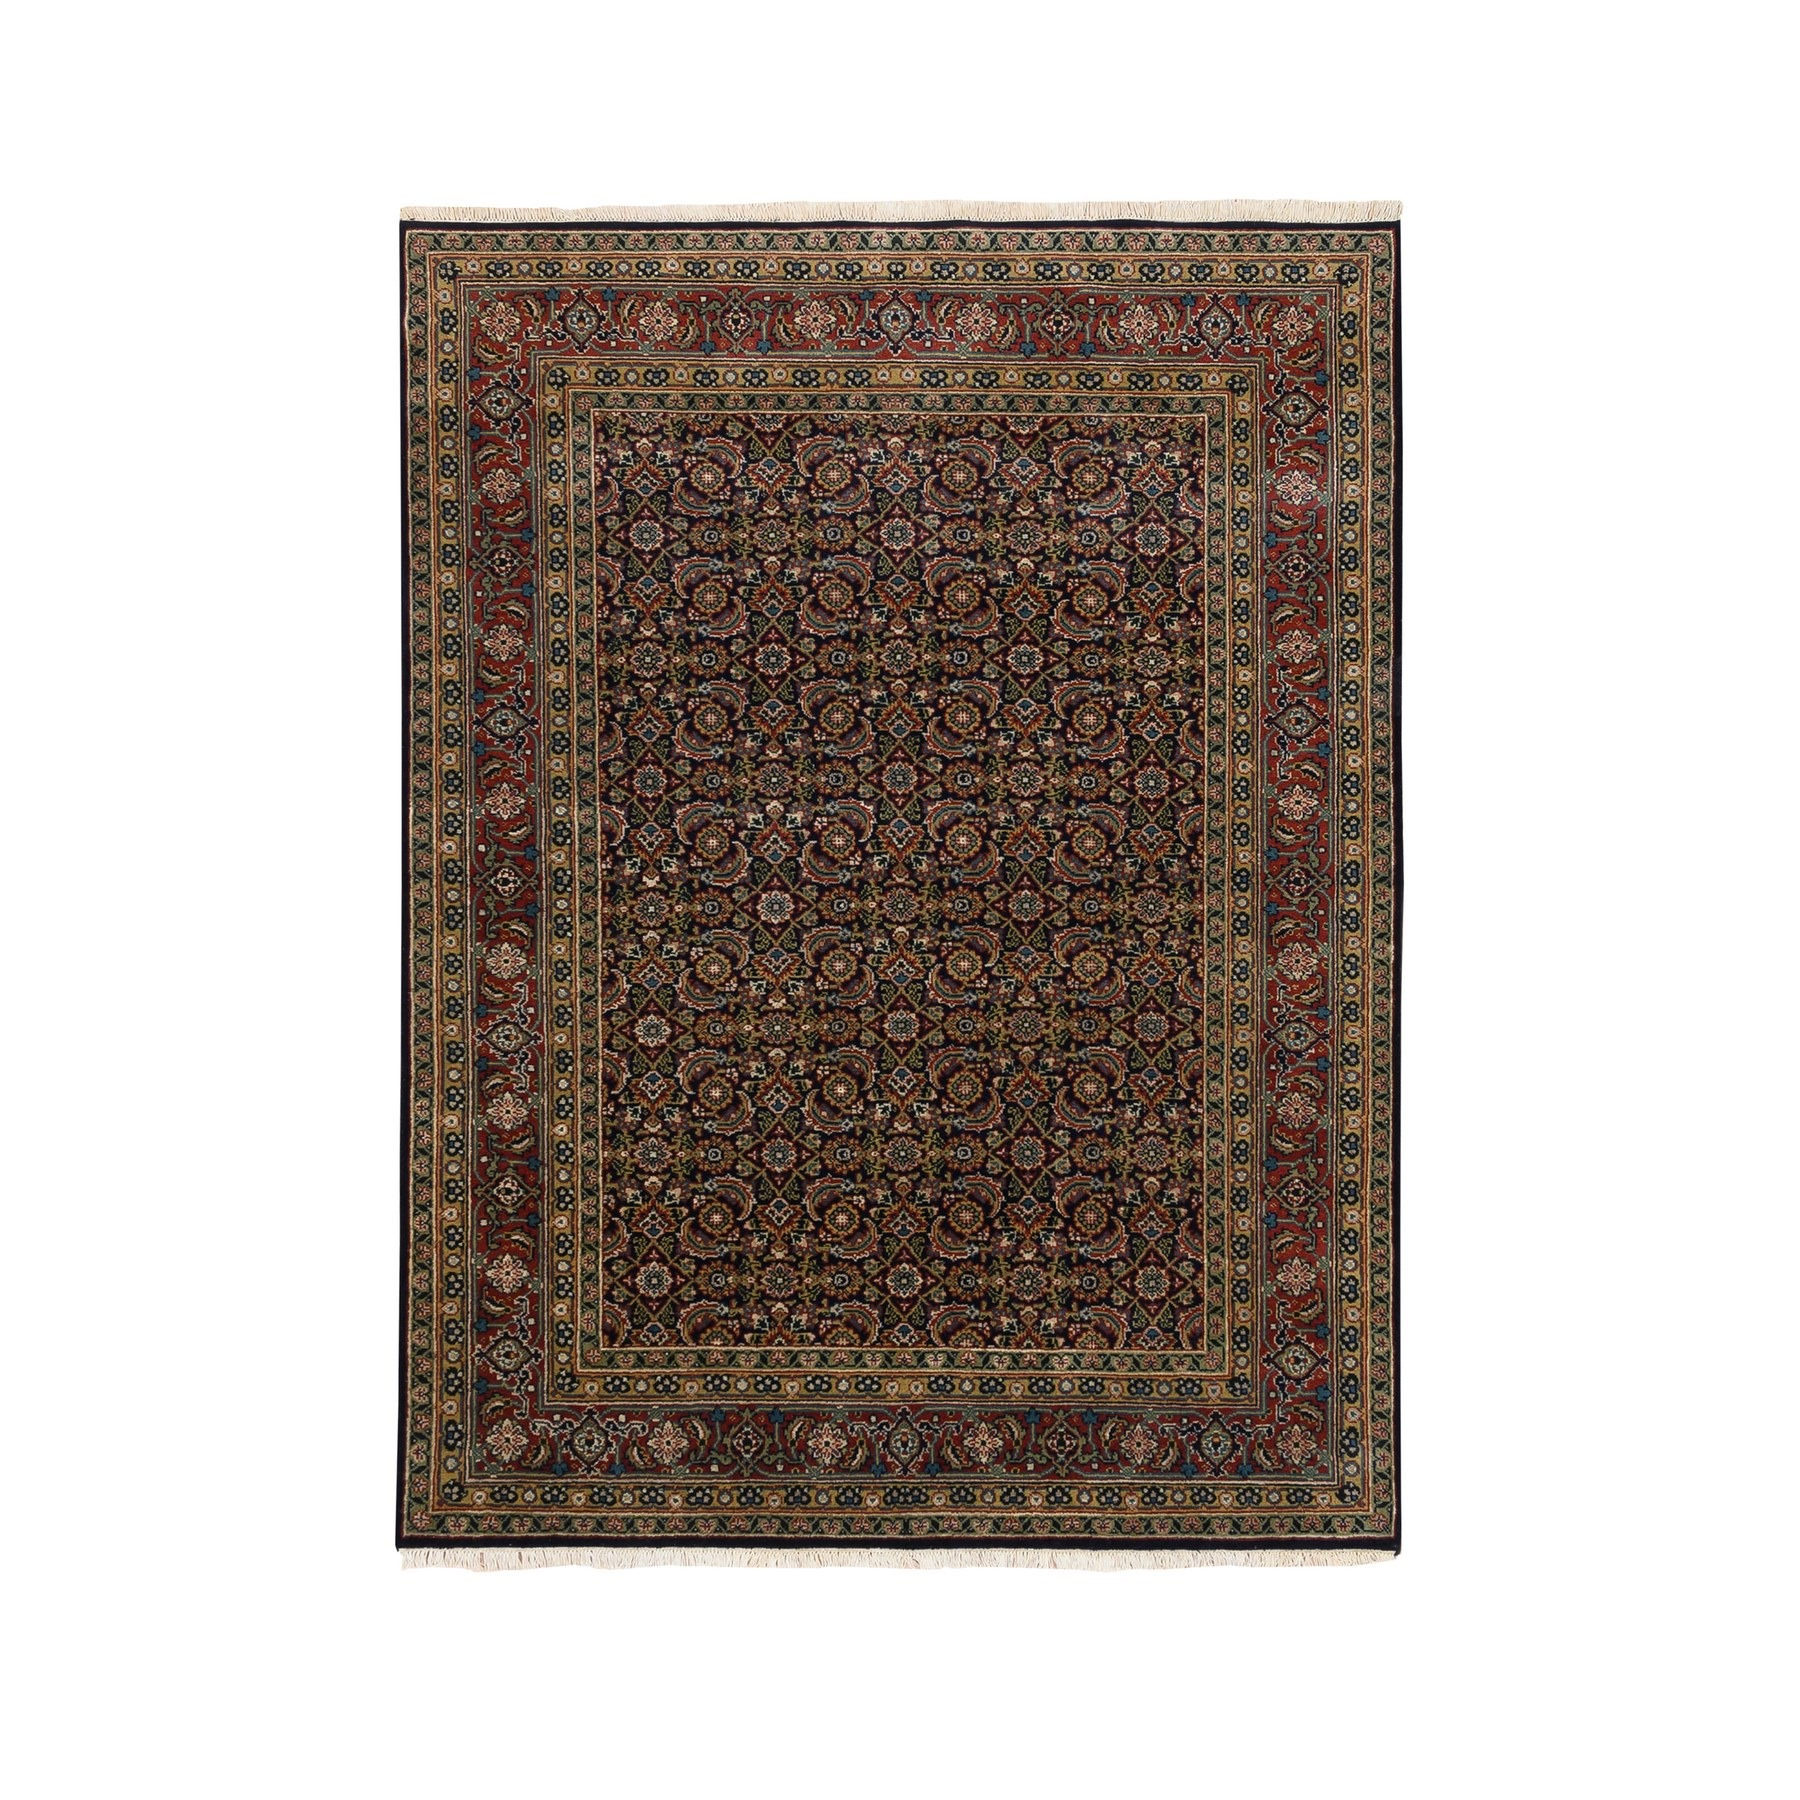 Pirniakan Collection Hand Knotted Blue Rug No: 1124686